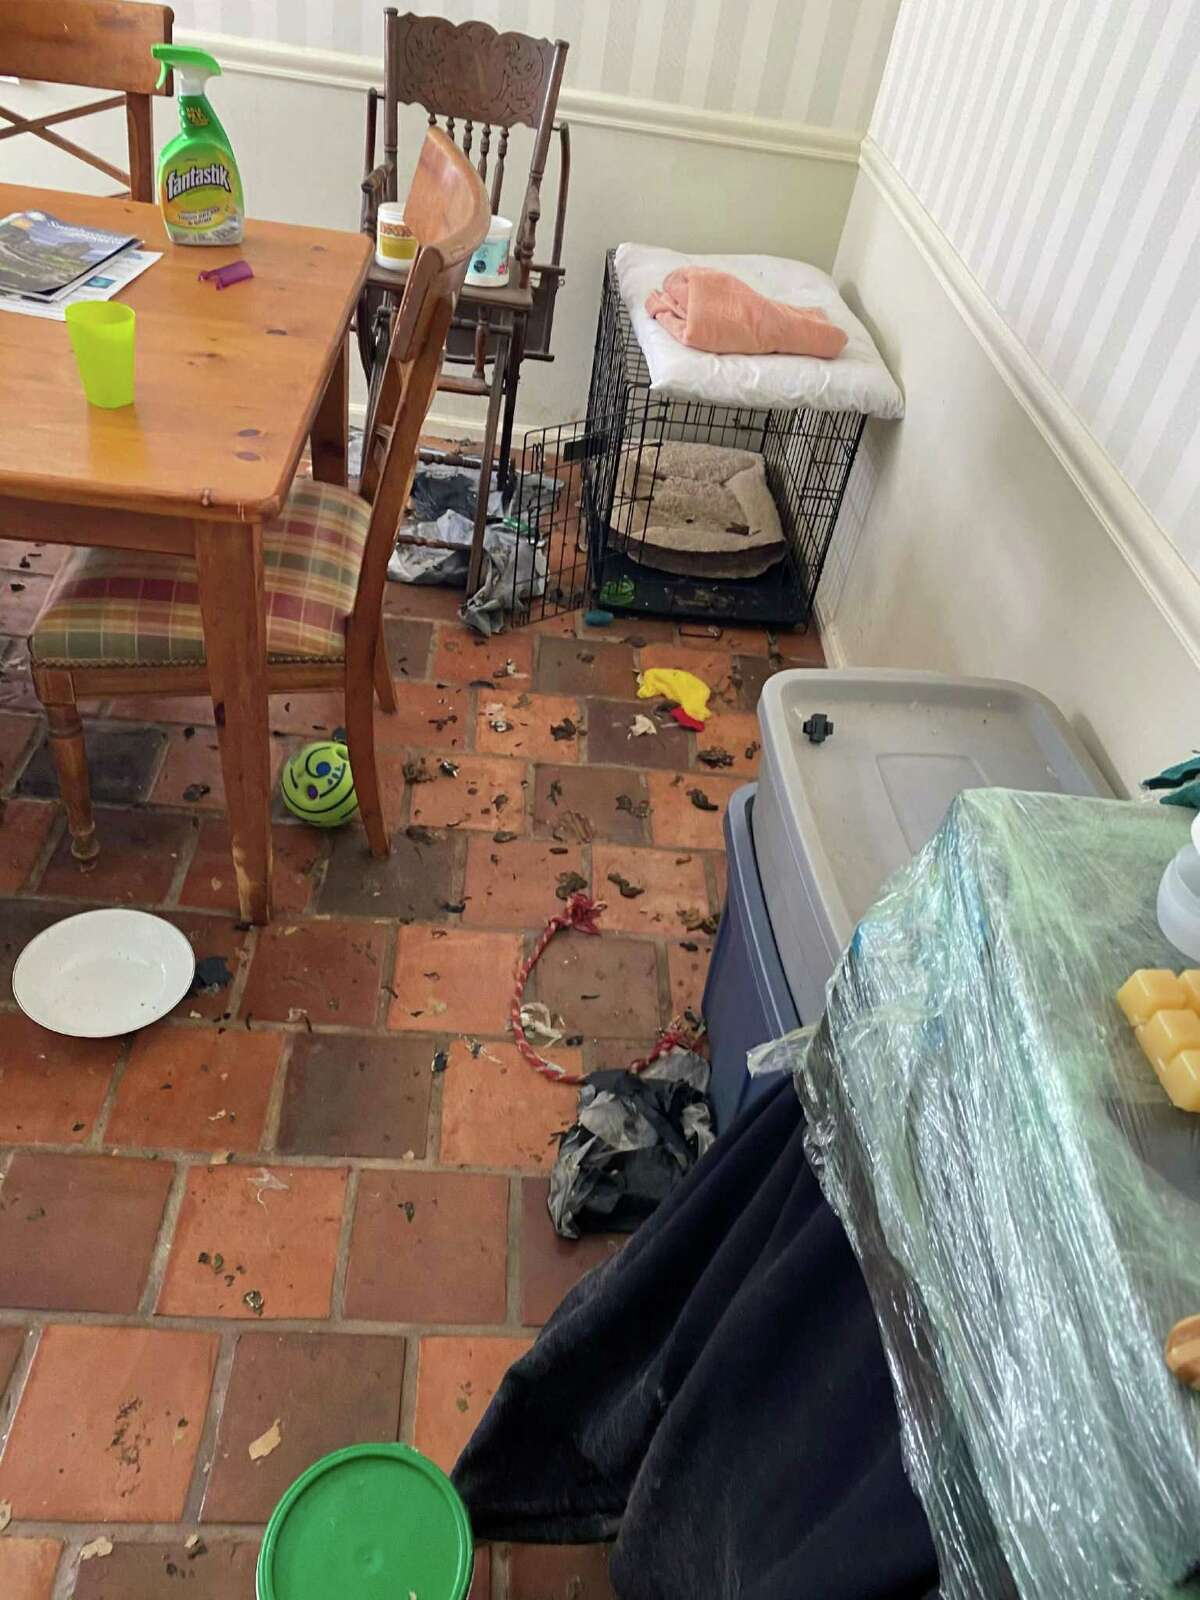 Photos submitted by the plaintiff, the Town of New Canaan, showing conditions for dogs inside Catherine Palmer's Butler Lane home, where 12 dogs were seized after three died. Warning: Some of these photos, which have been entered into evidence, may be unsettling to some.